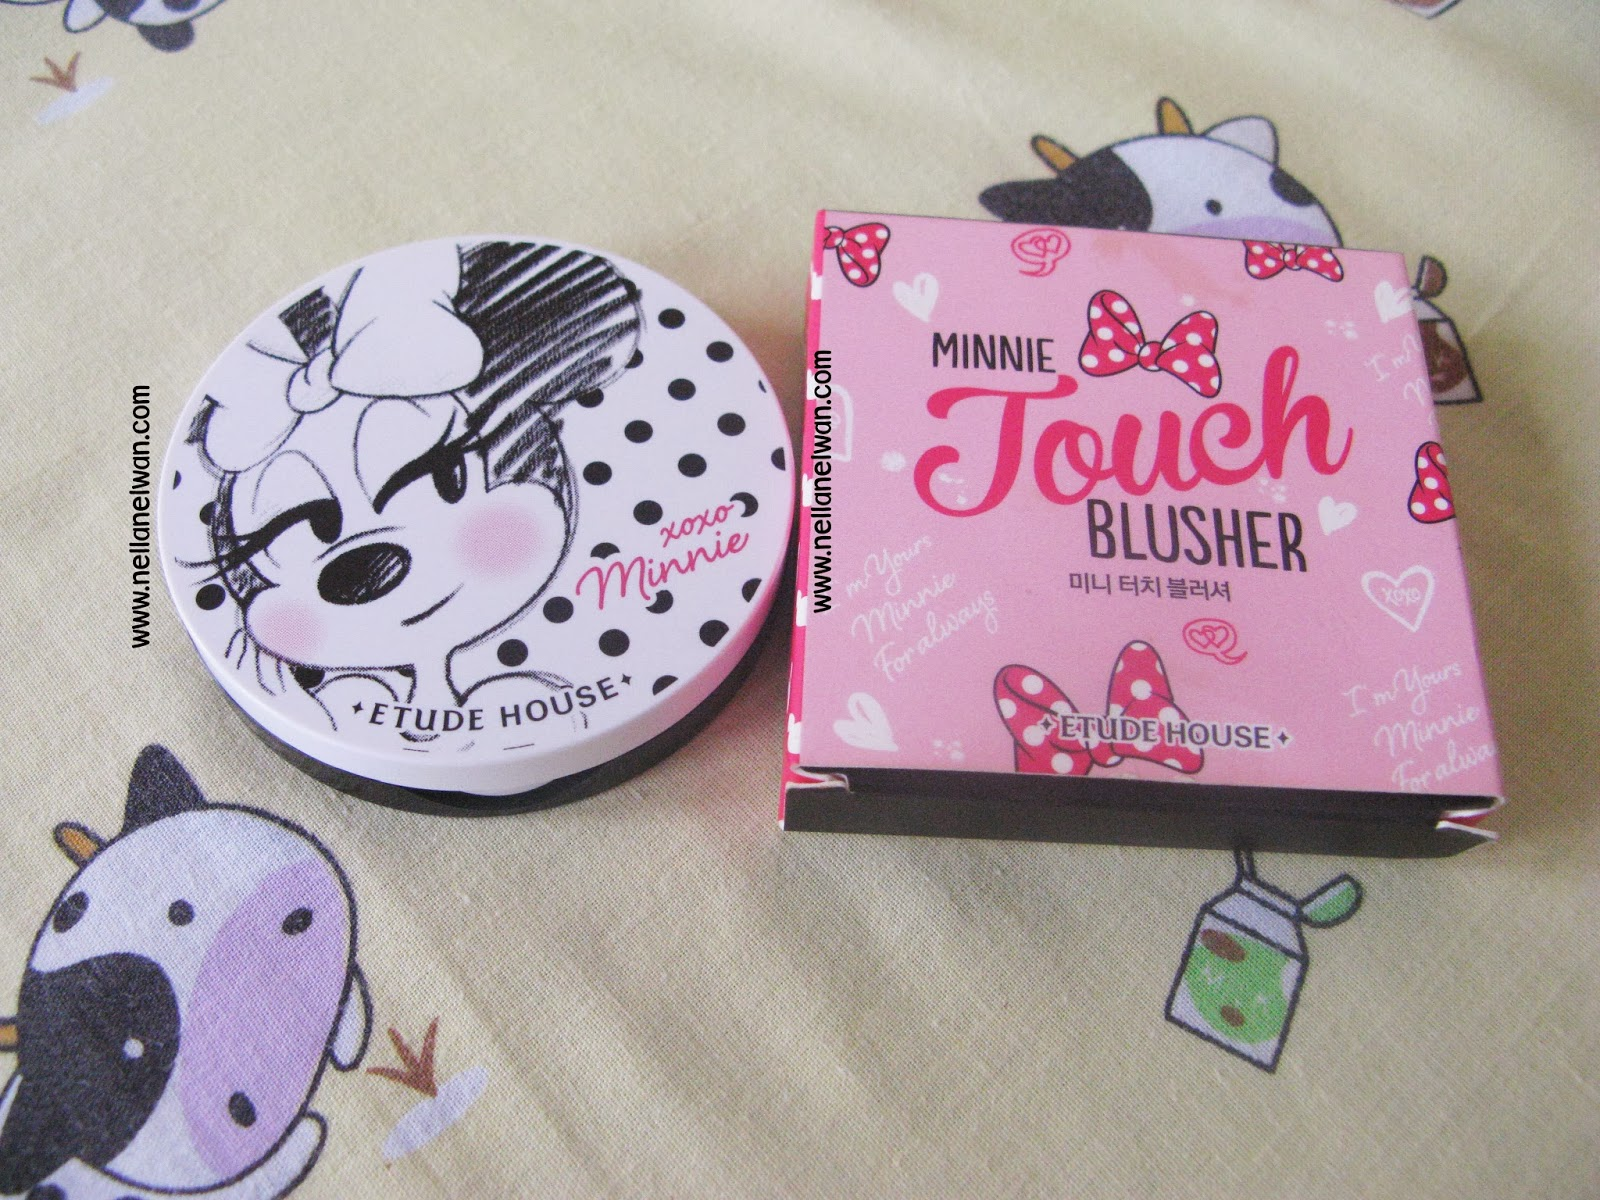 etude house minnie touch blusher